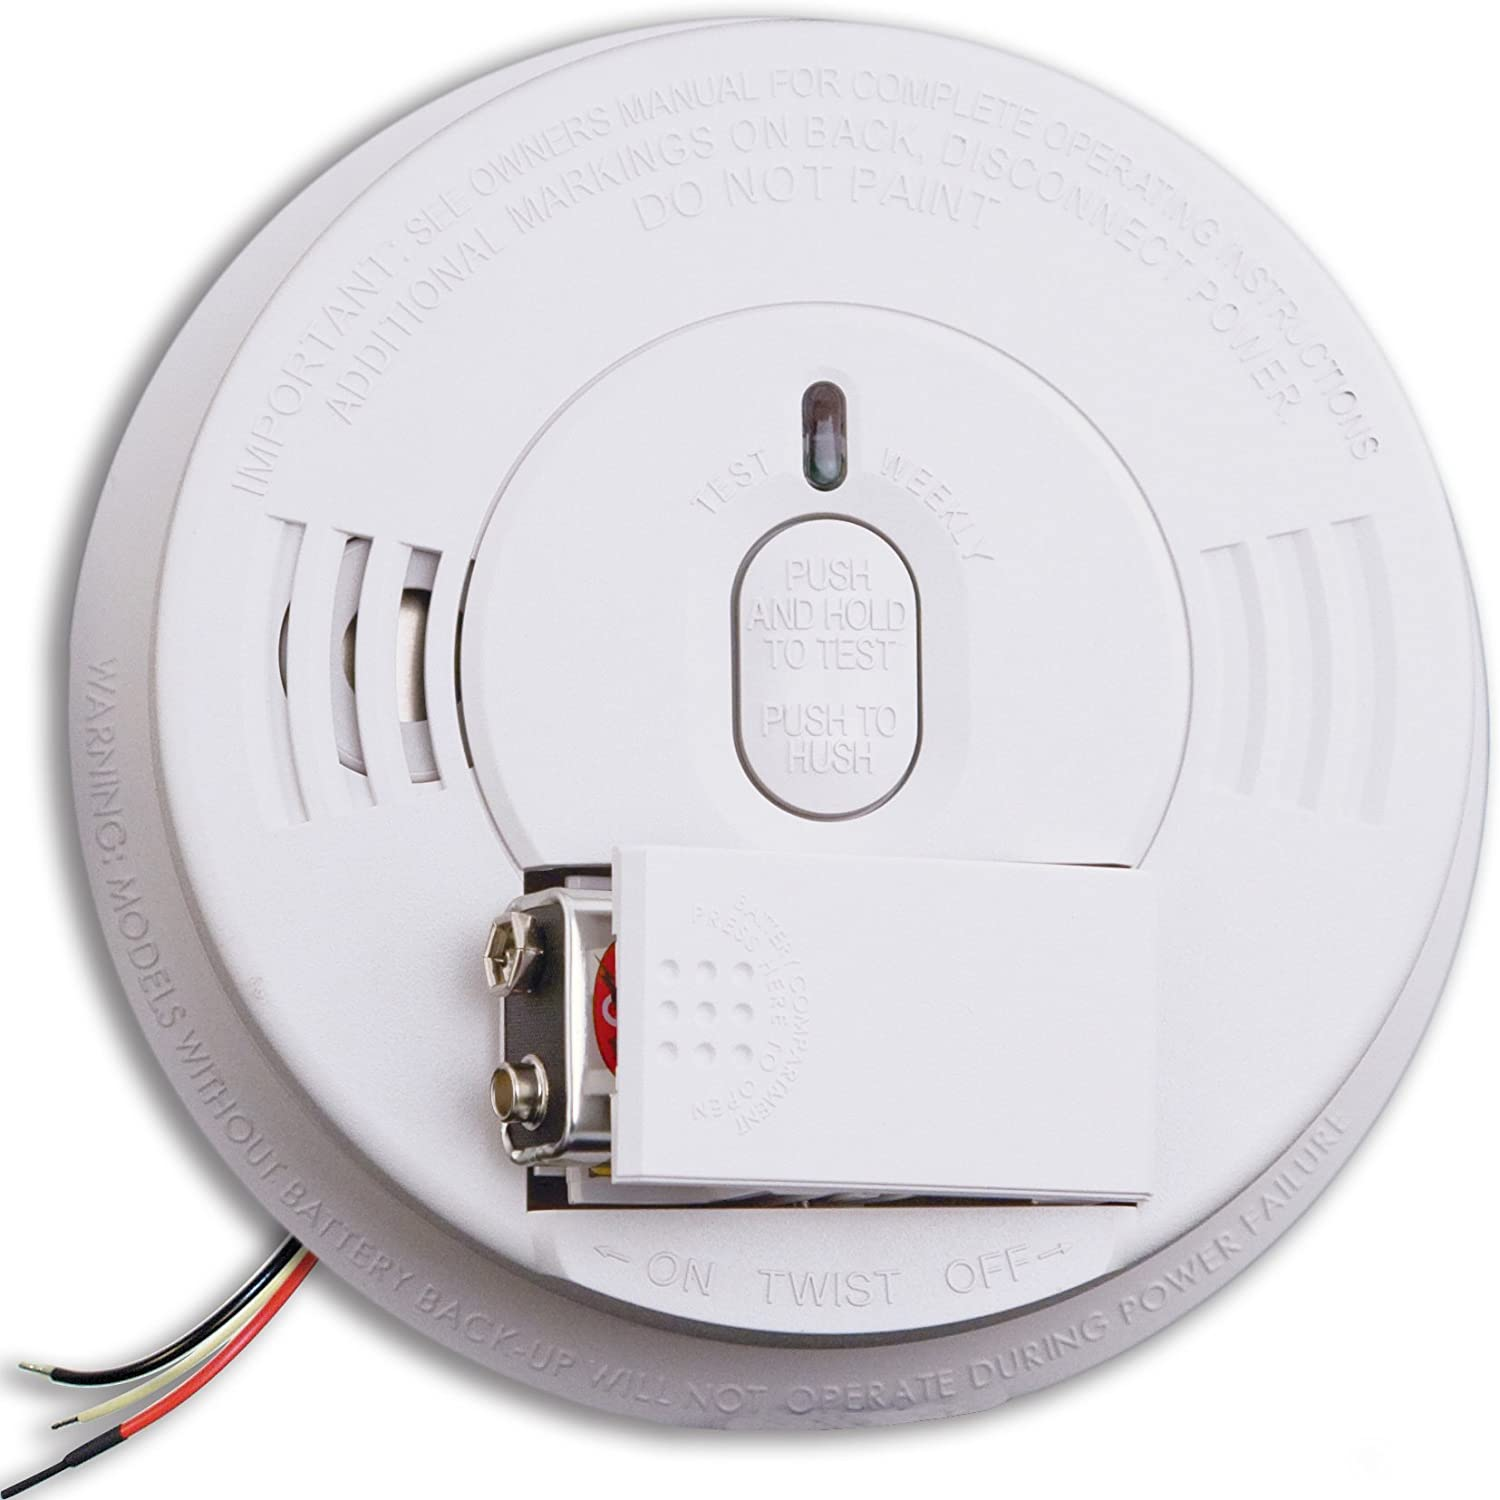 Kidde i12060 Hardwire with Front Load Battery Backup Smoke Alarm, 1 Pack, White - Smoke Detectors -